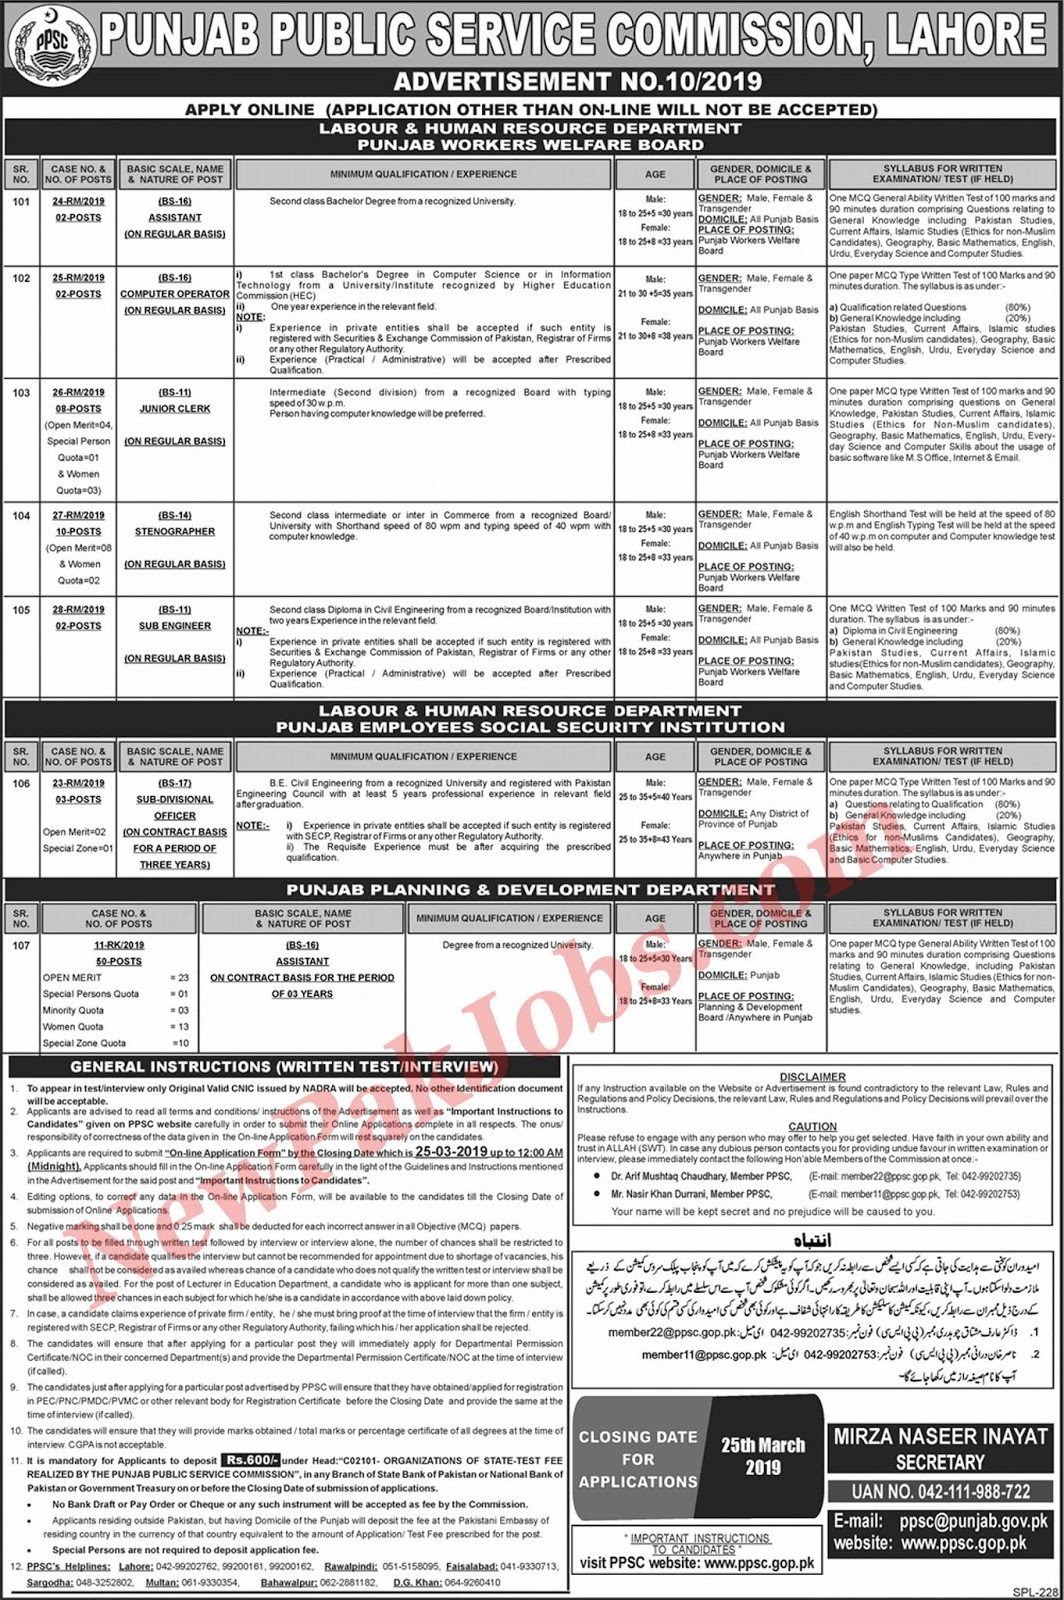 PPSC Jobs March 2019